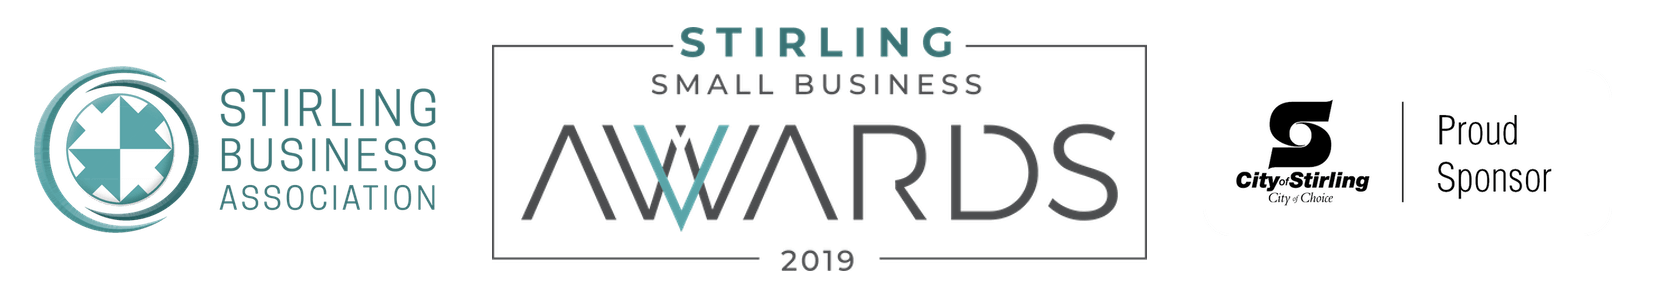 Stirling Business Association Small Business Awards